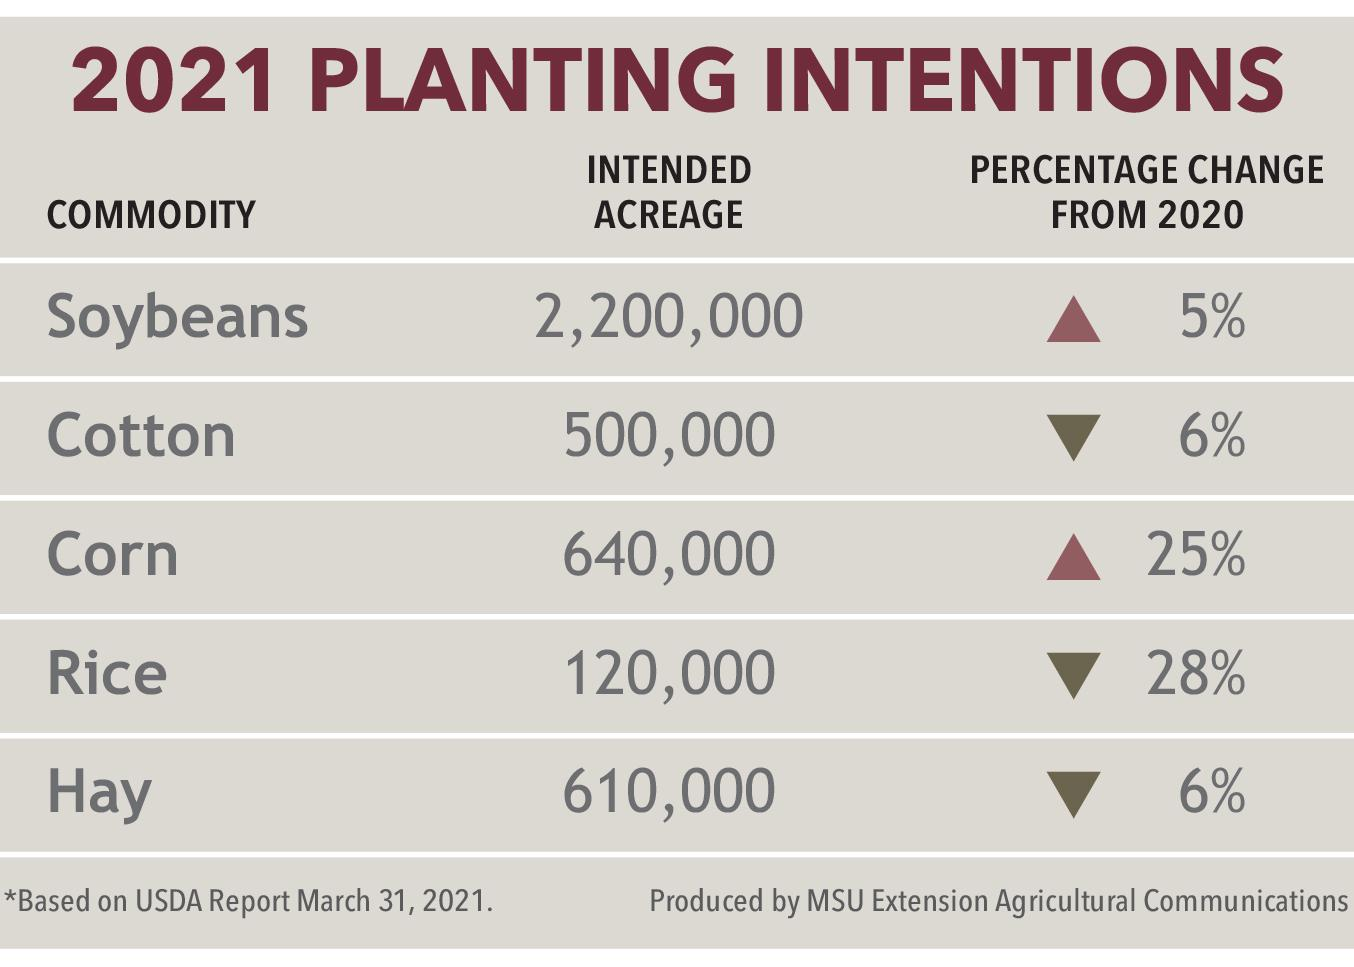 Graphic showing 2021 planting intentions